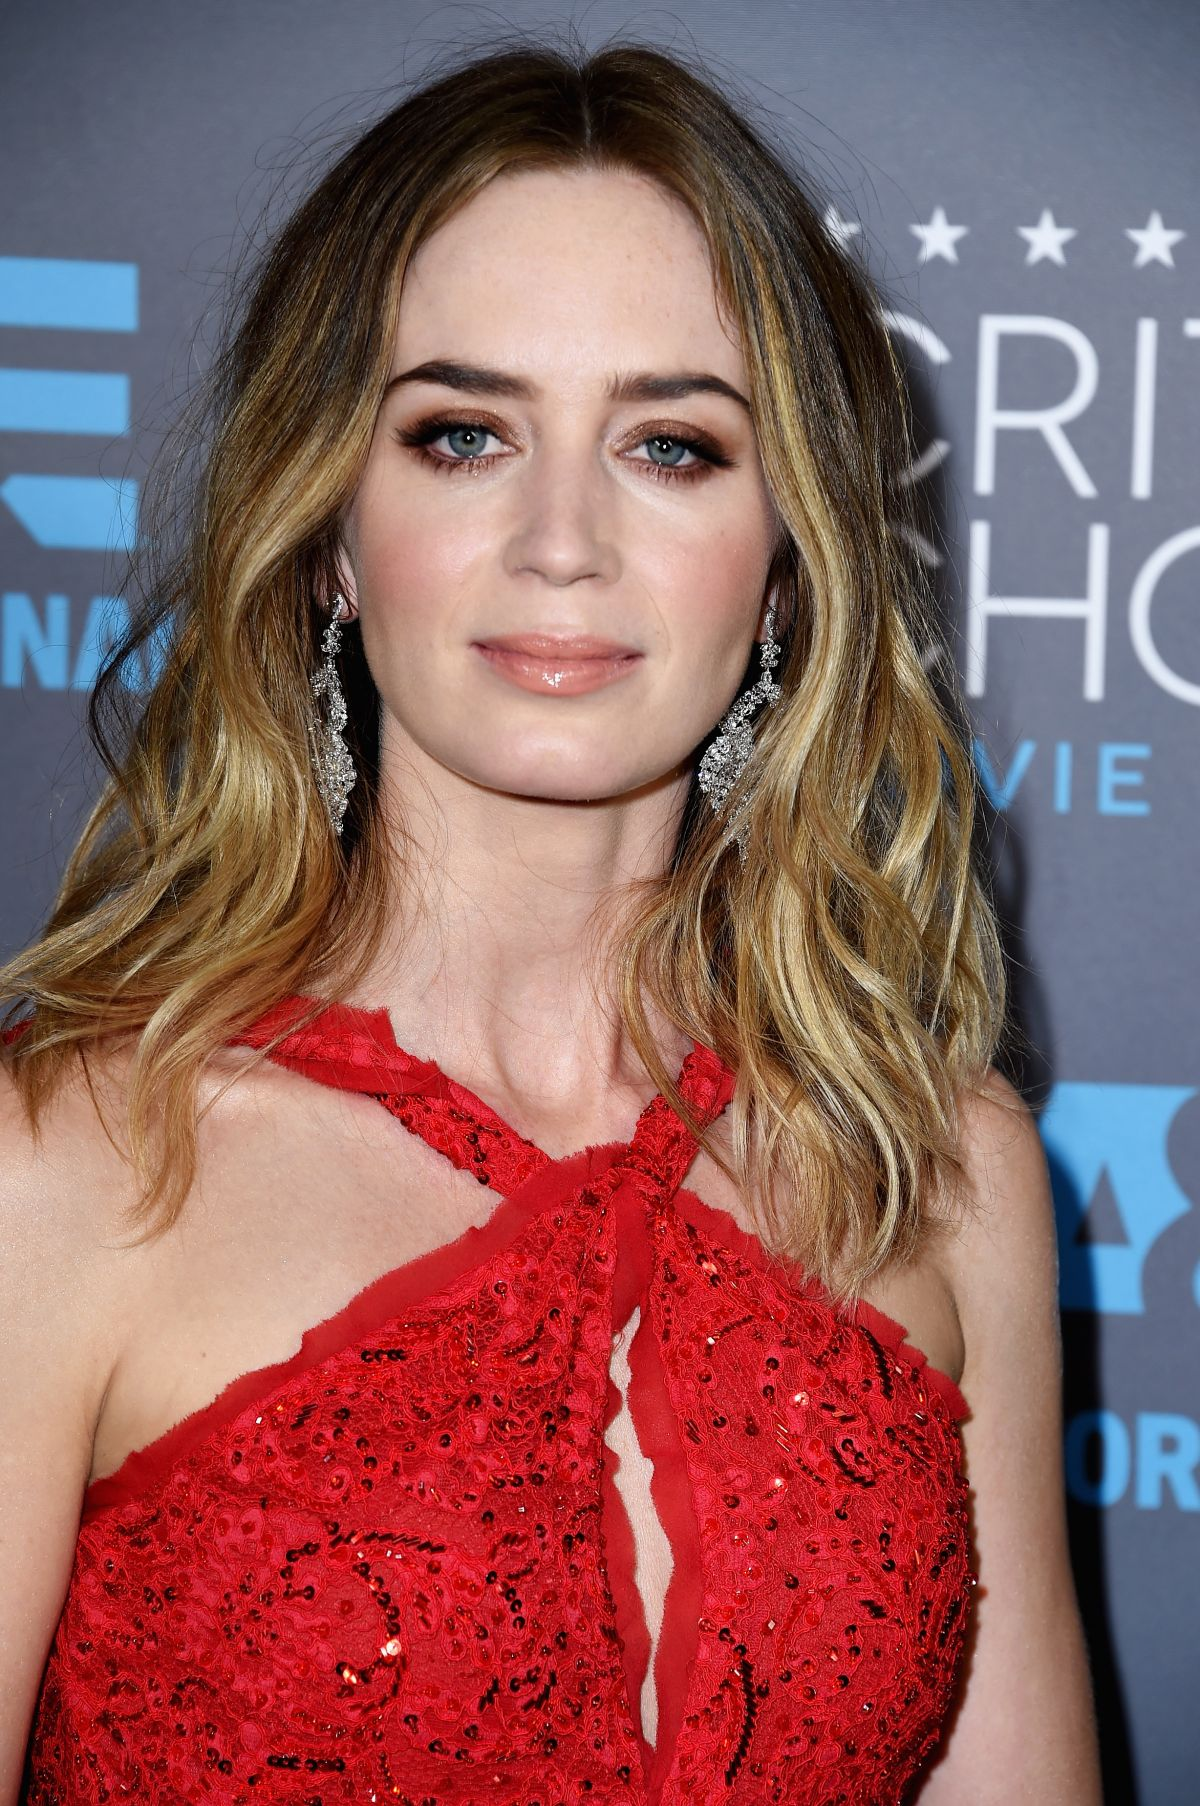 Emily Blunt | Disney Wiki | FANDOM powered by Wikia Emily Blunt